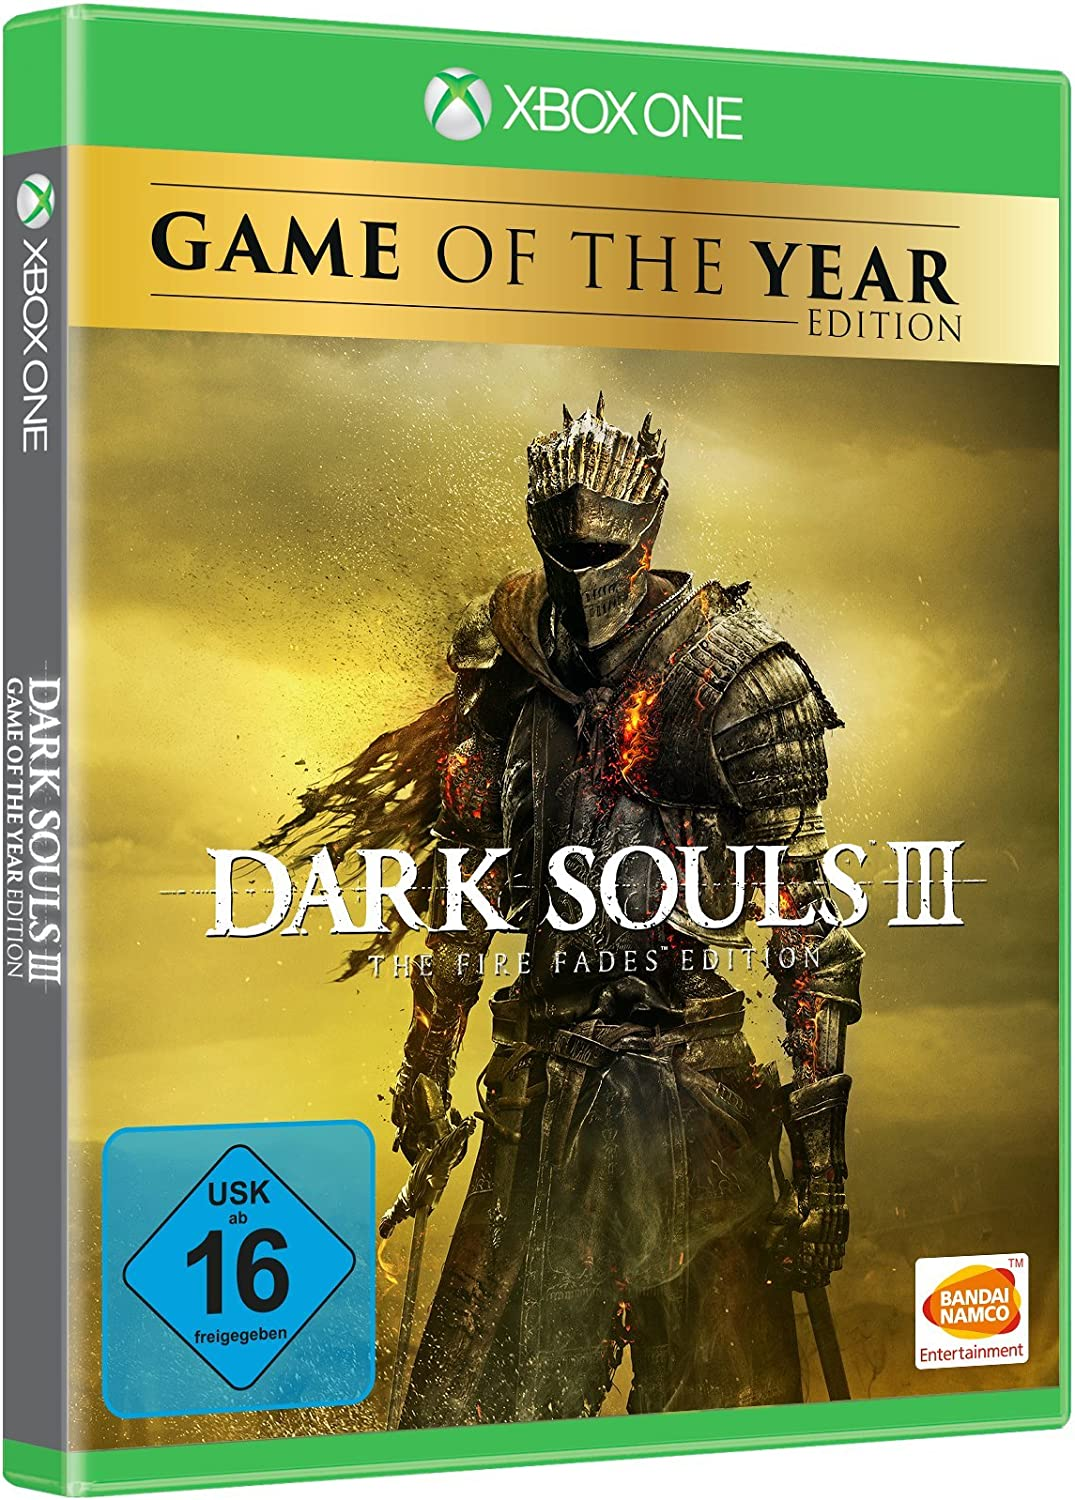 Dark Souls 3 - The Fire Fades Edition [Importación Alemana]: Amazon.es: Videojuegos